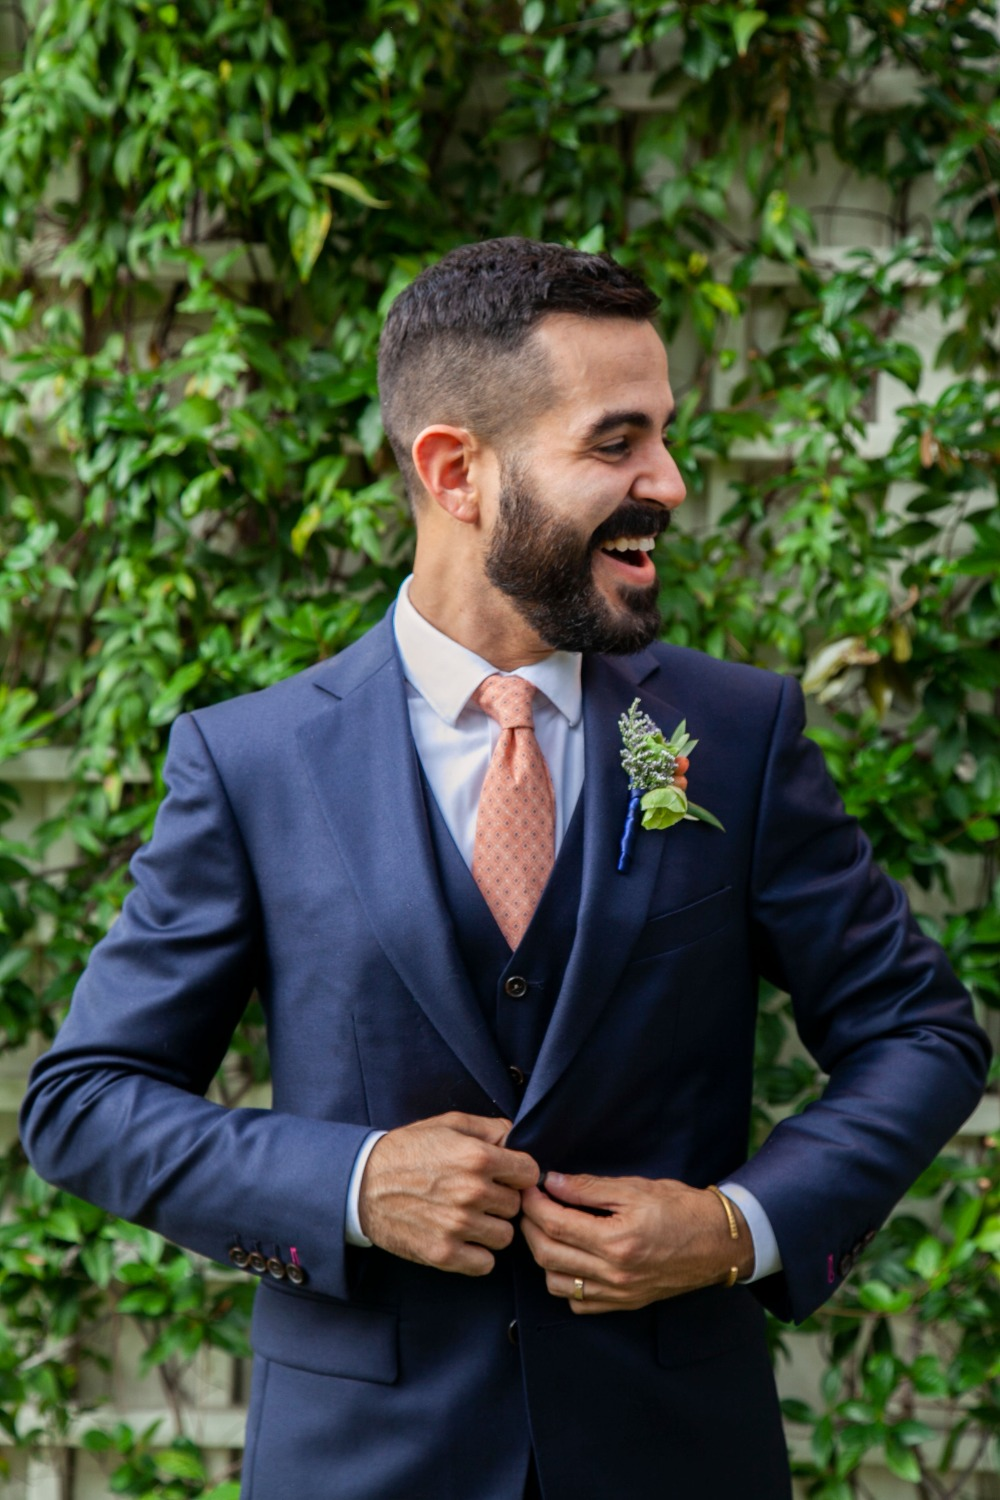 groom in navy blue suit